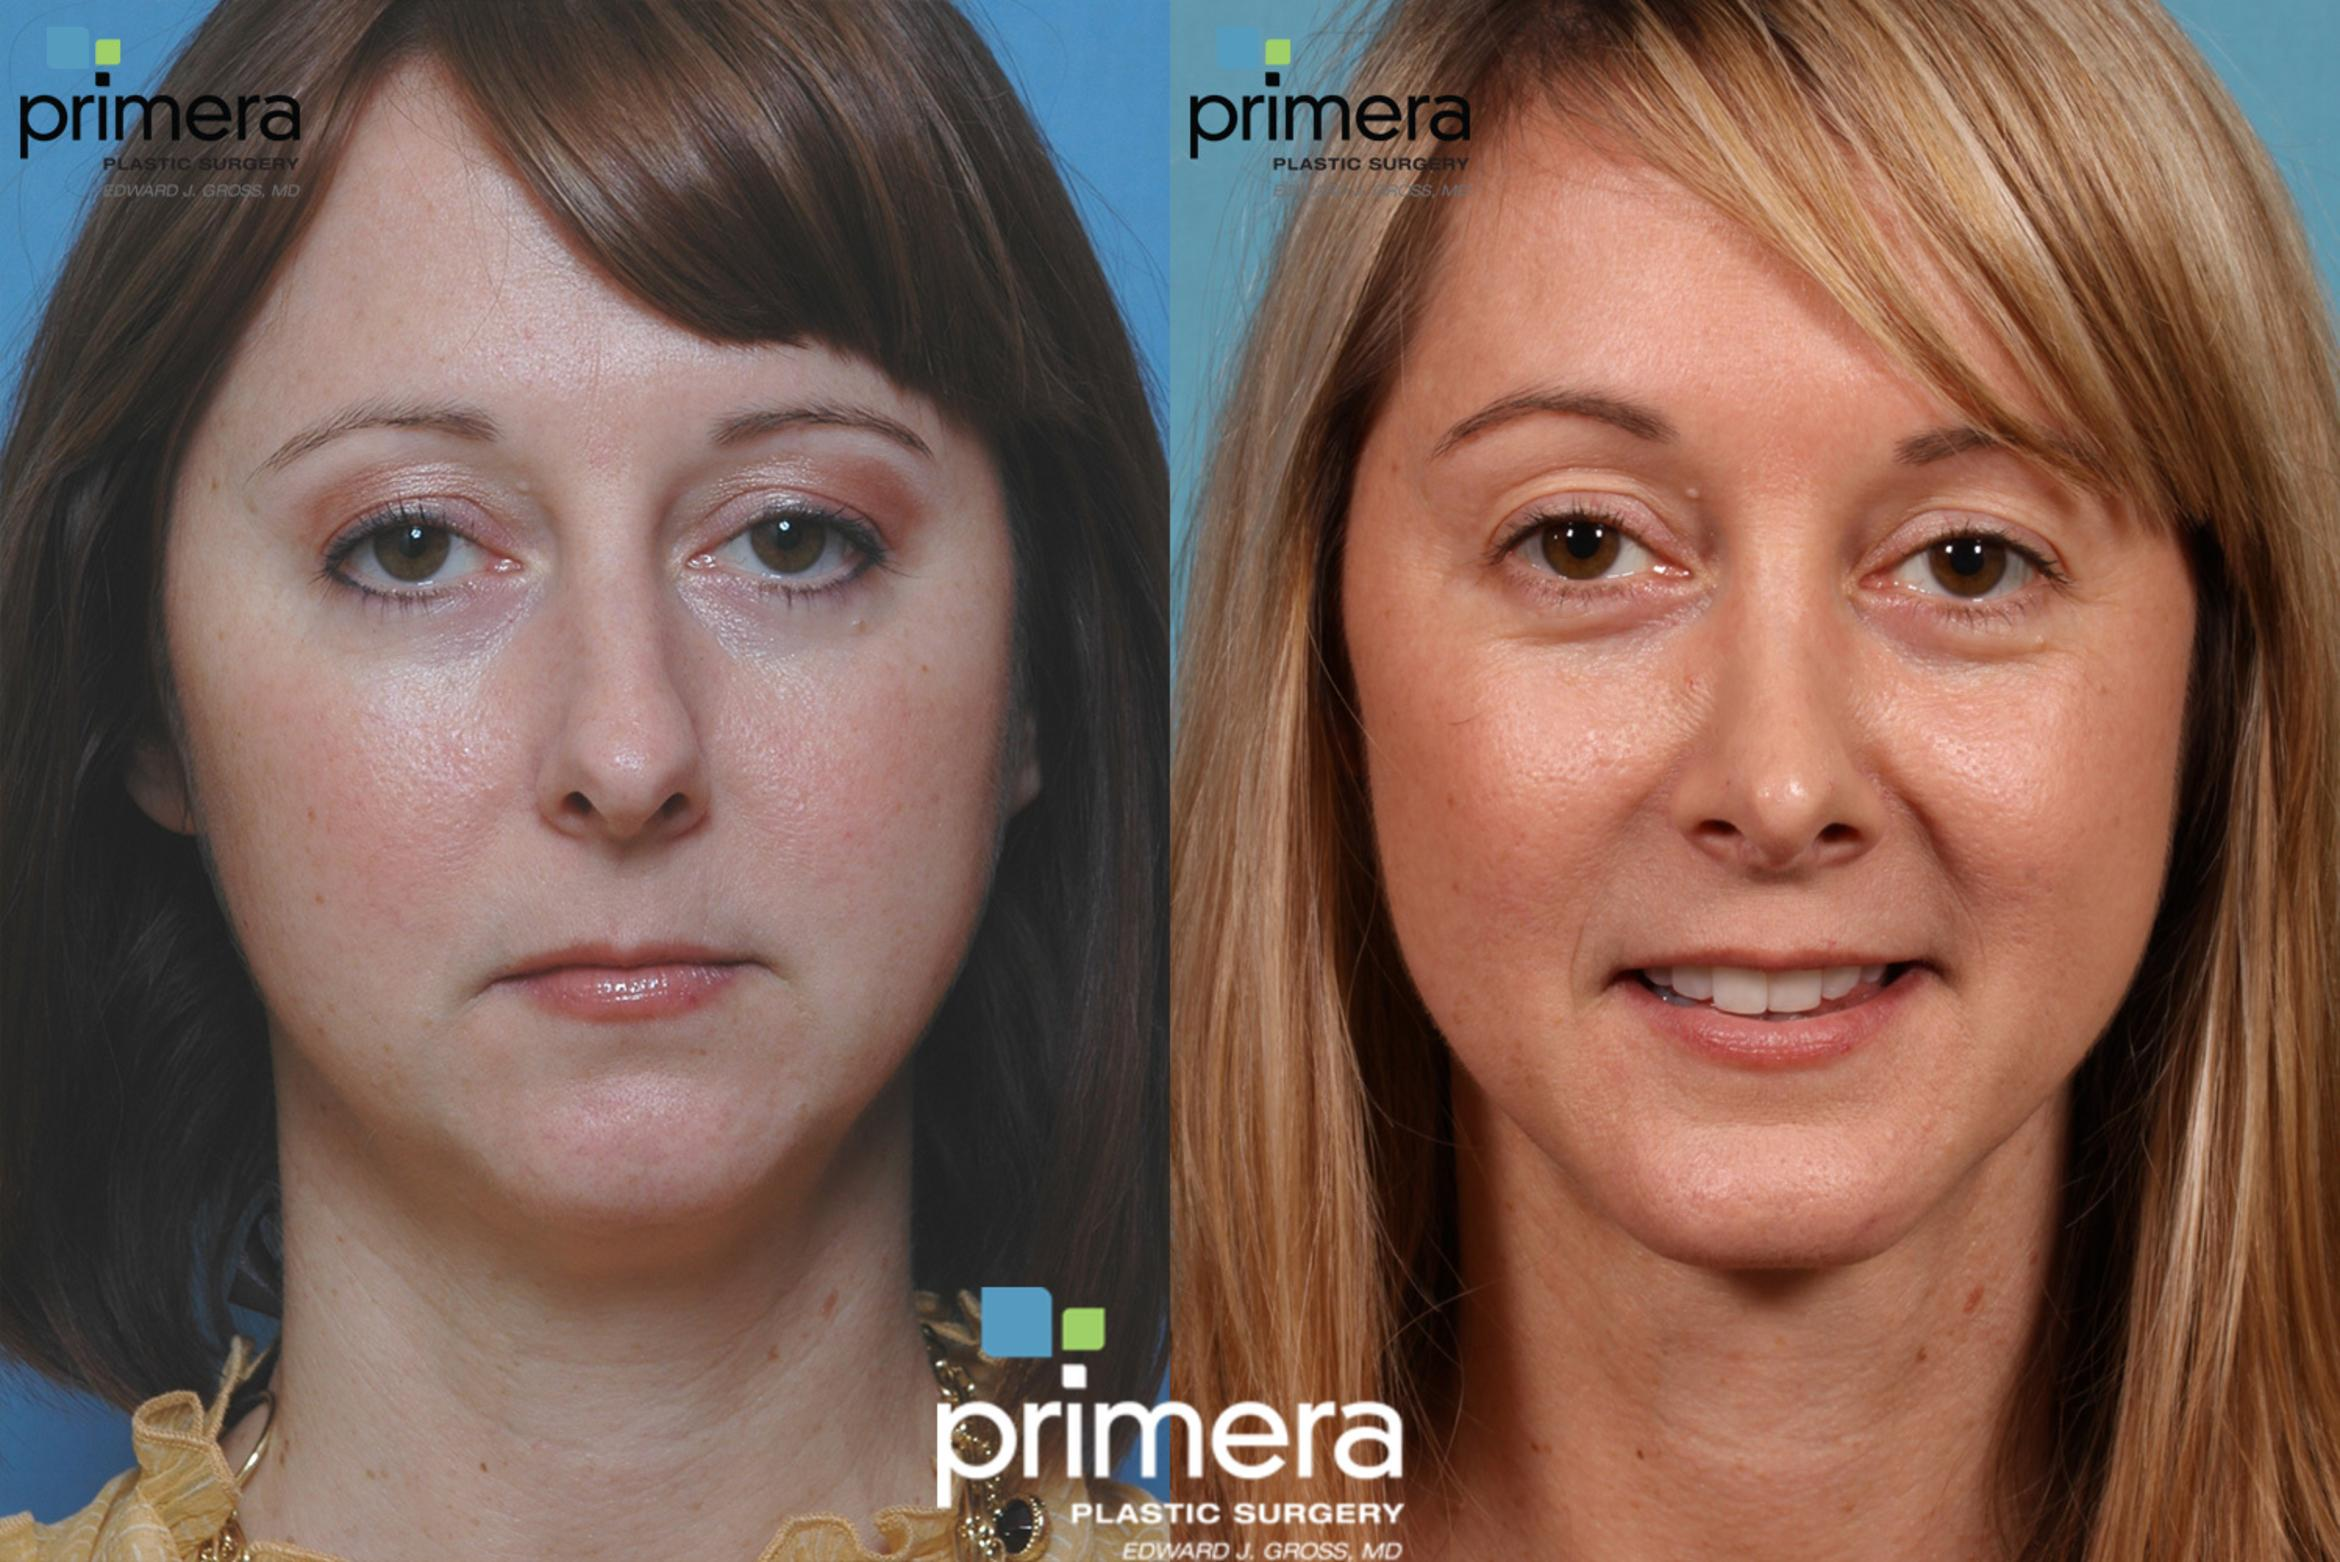 Chin & Cheek Implant Before & After Photo | Orlando, Florida | Primera Plastic Surgery